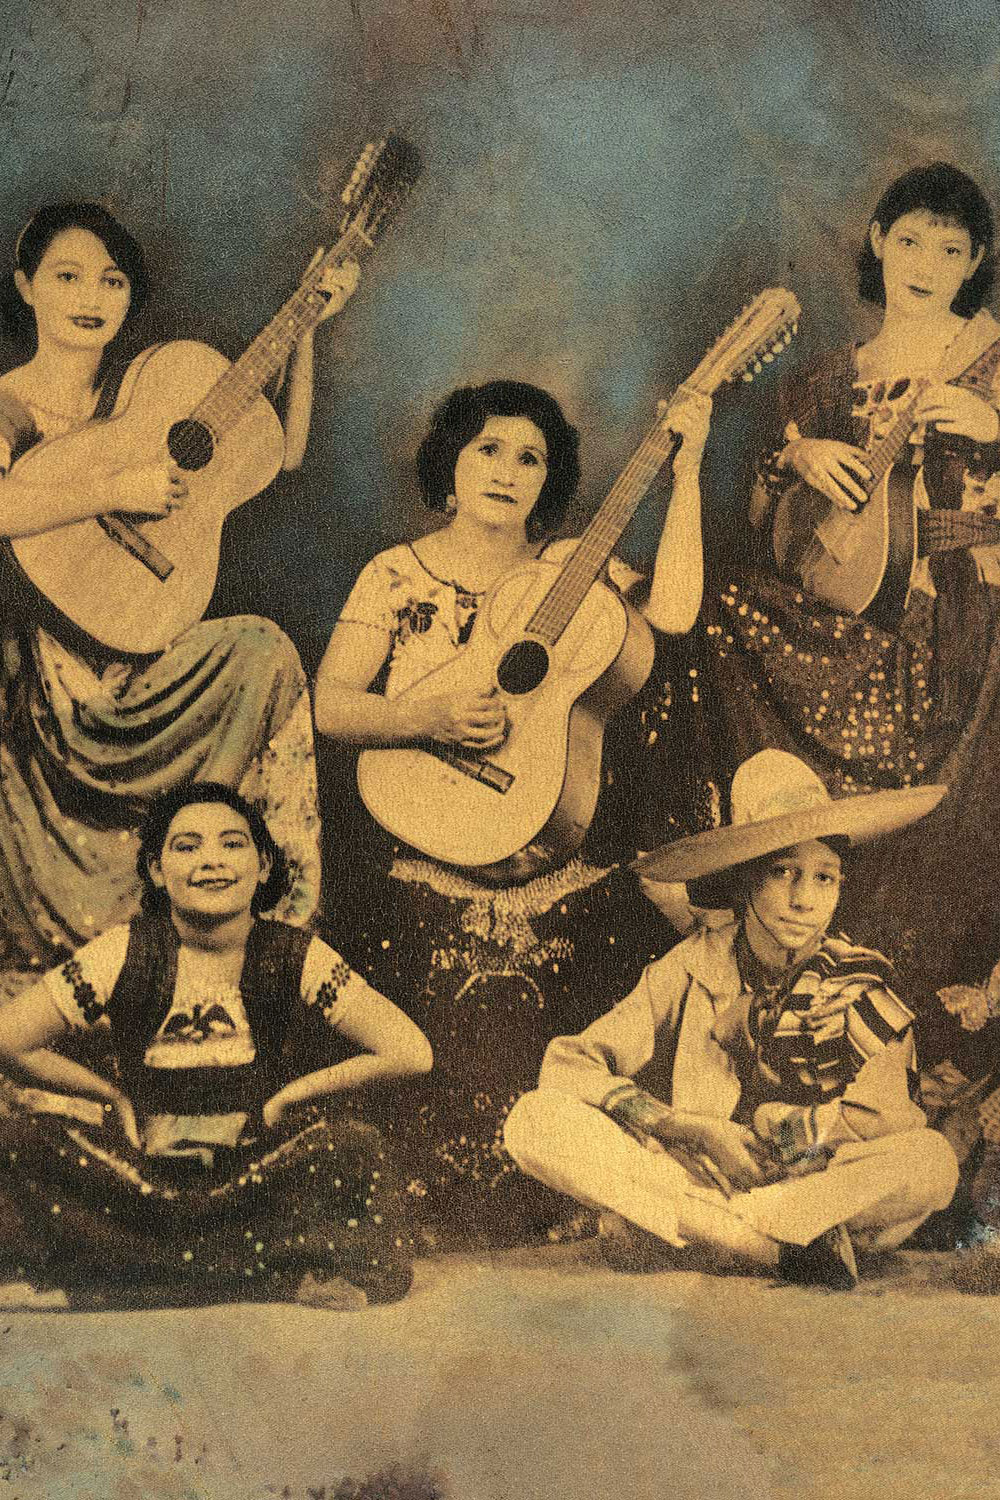 4 women and 1 male in a faded photograph, 3 holding guitars